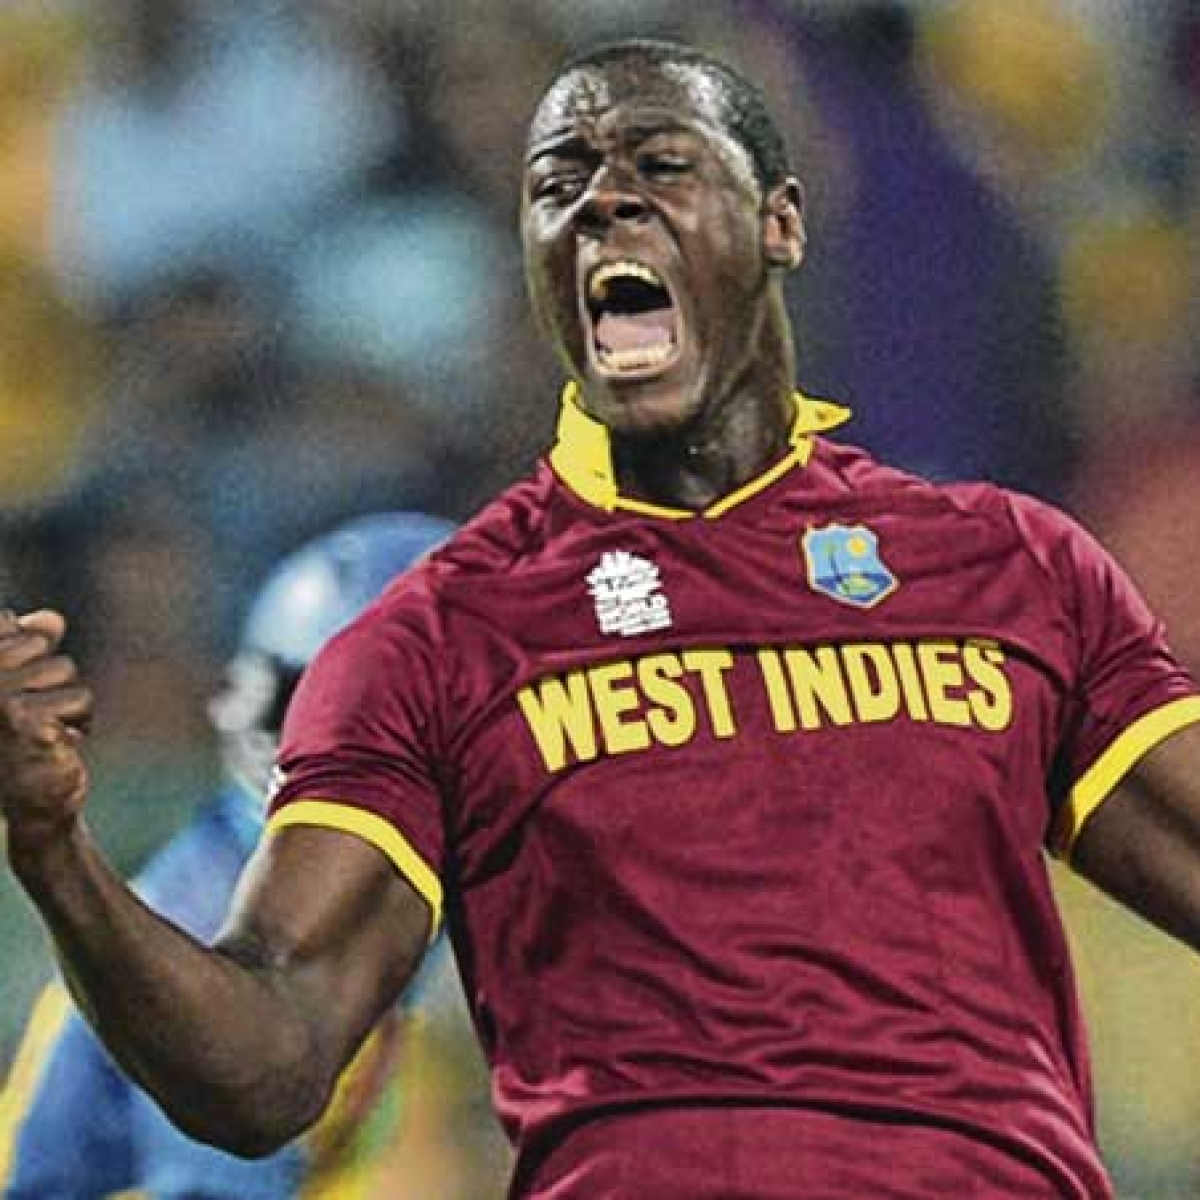 India vs West Indies: Carlos Brathwaite says Andre Russell really wanted to play and show off skills